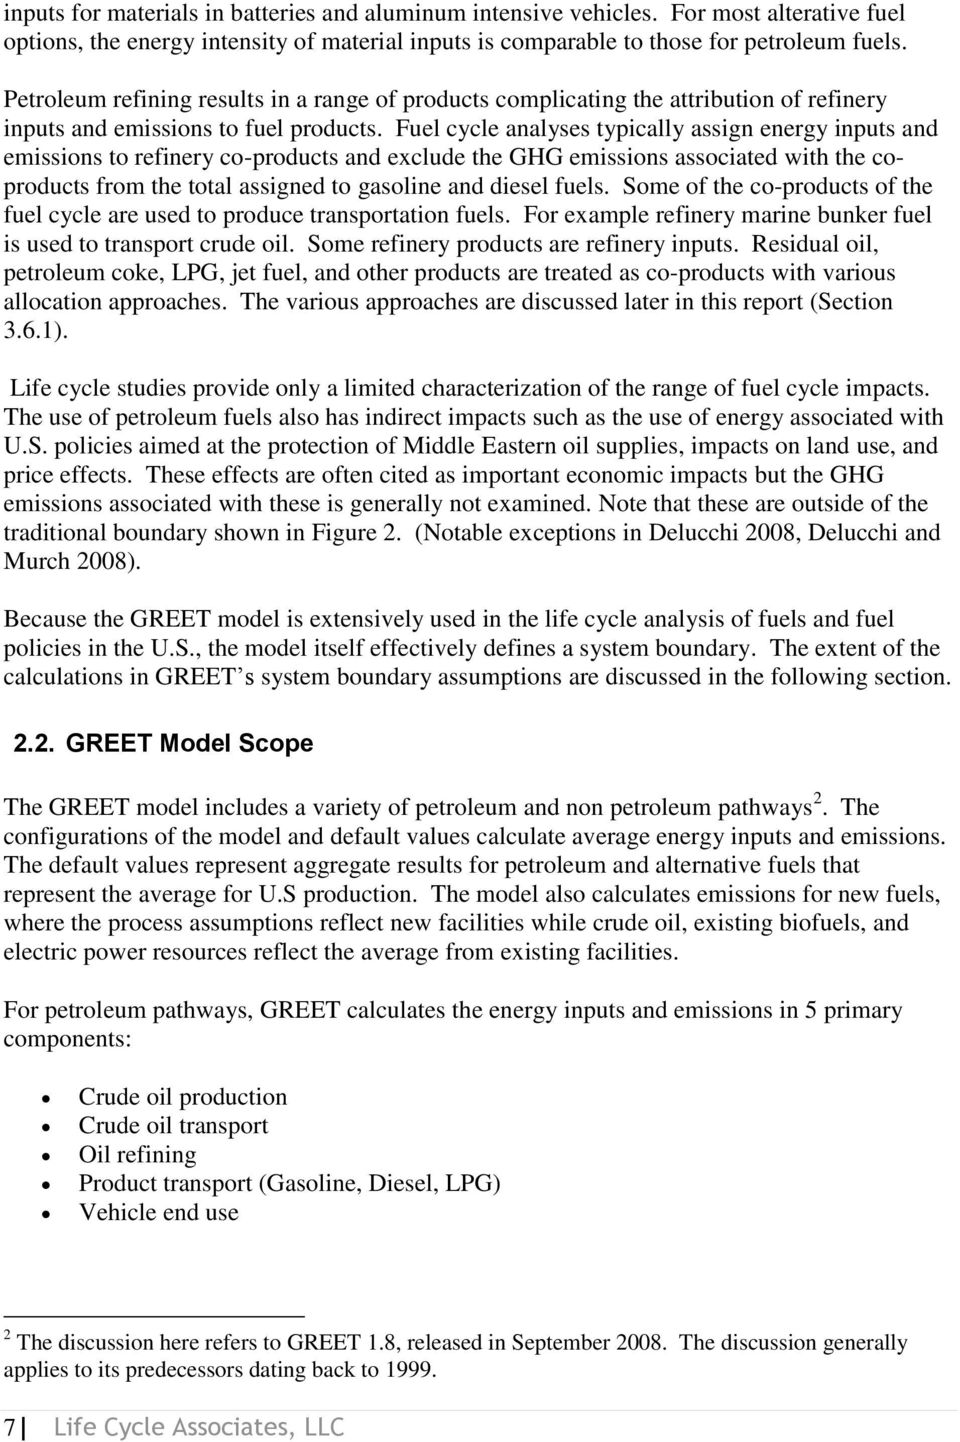 Fuel cycle analyses typically assign energy inputs and emissions to refinery co-products and exclude the GHG emissions associated with the coproducts from the total assigned to gasoline and diesel